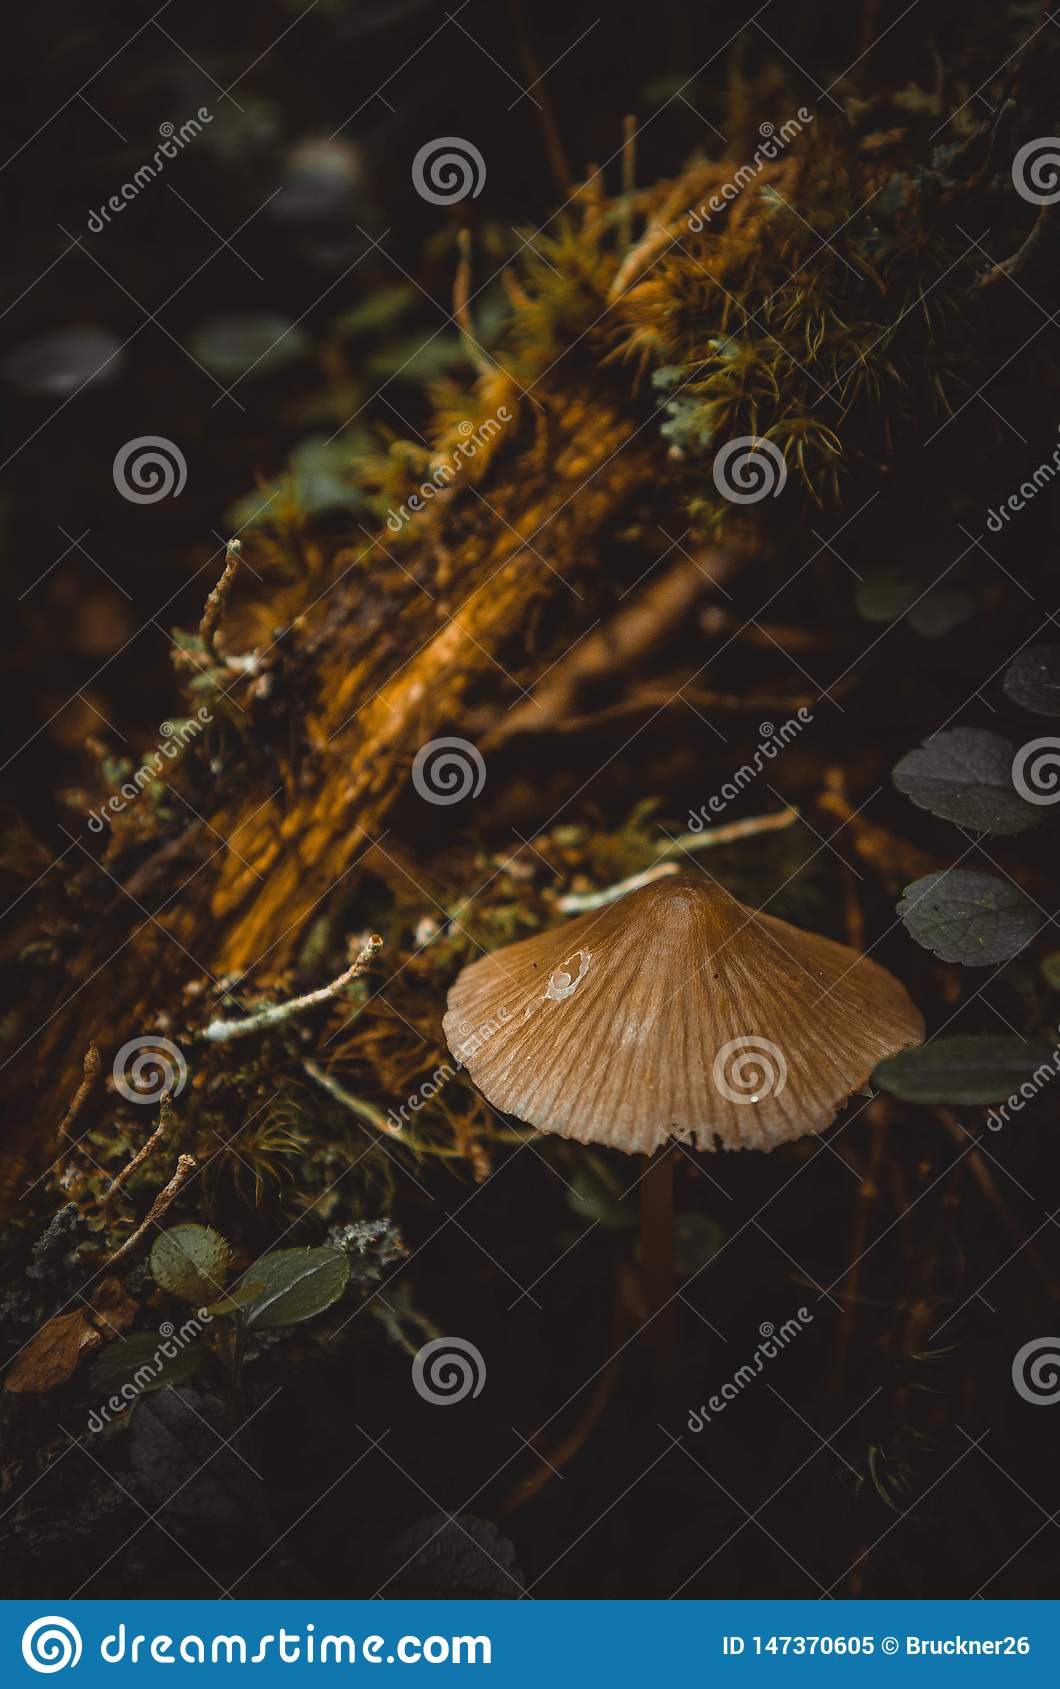 A small mushroom on the background of plants